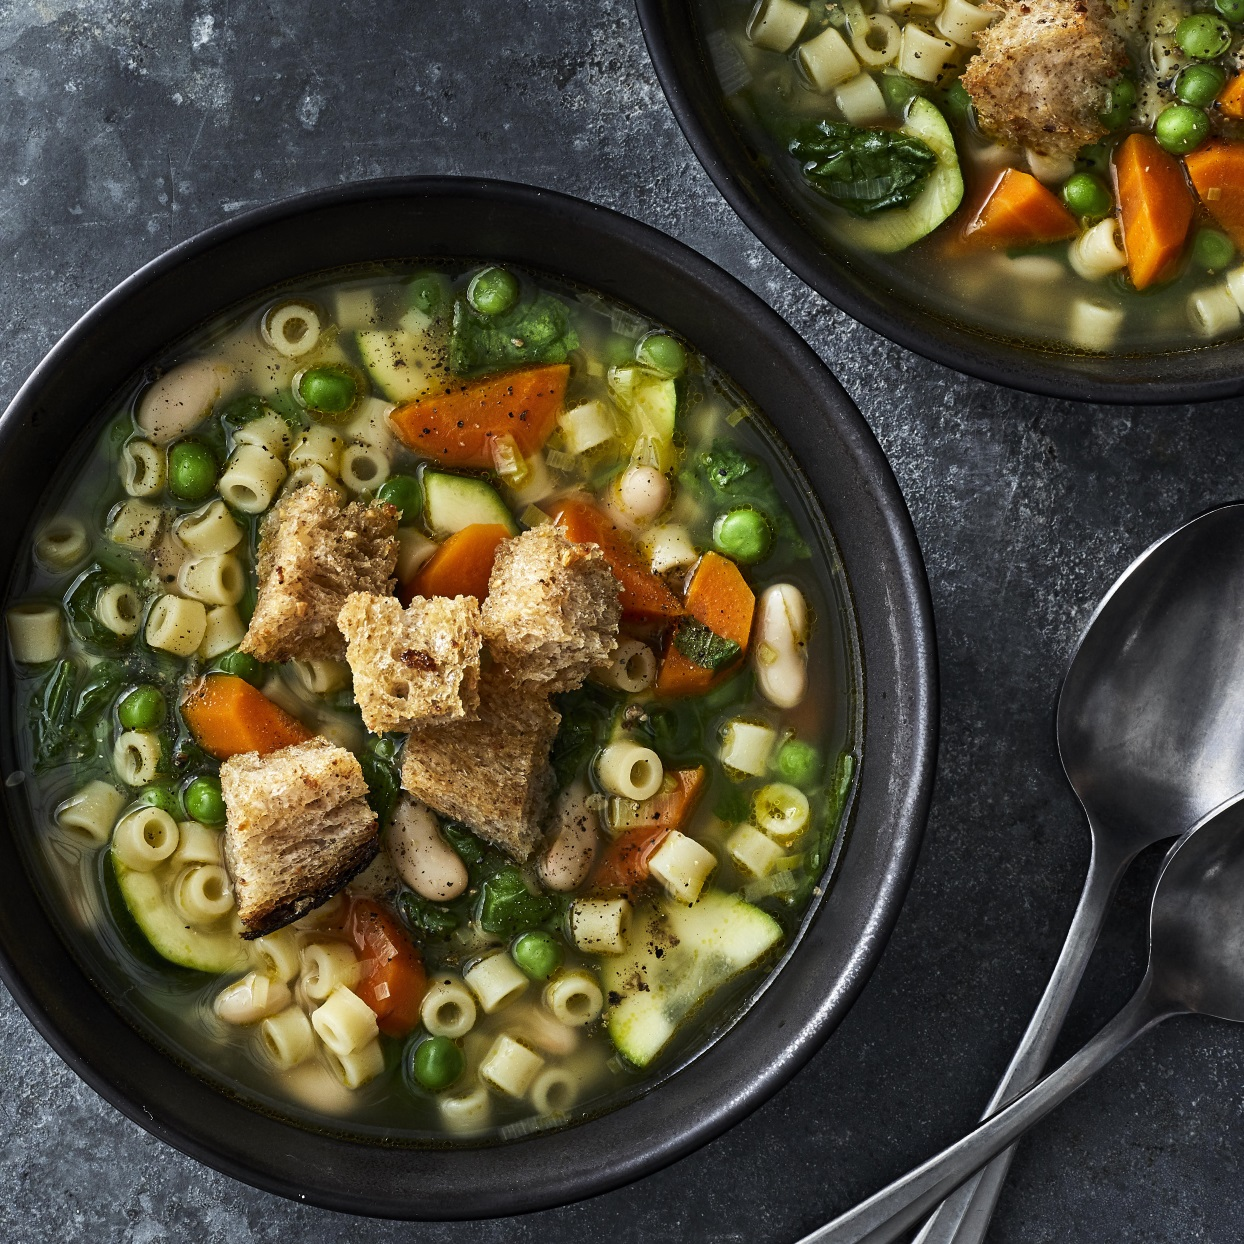 Vegan Minestrone Soup Trusted Brands